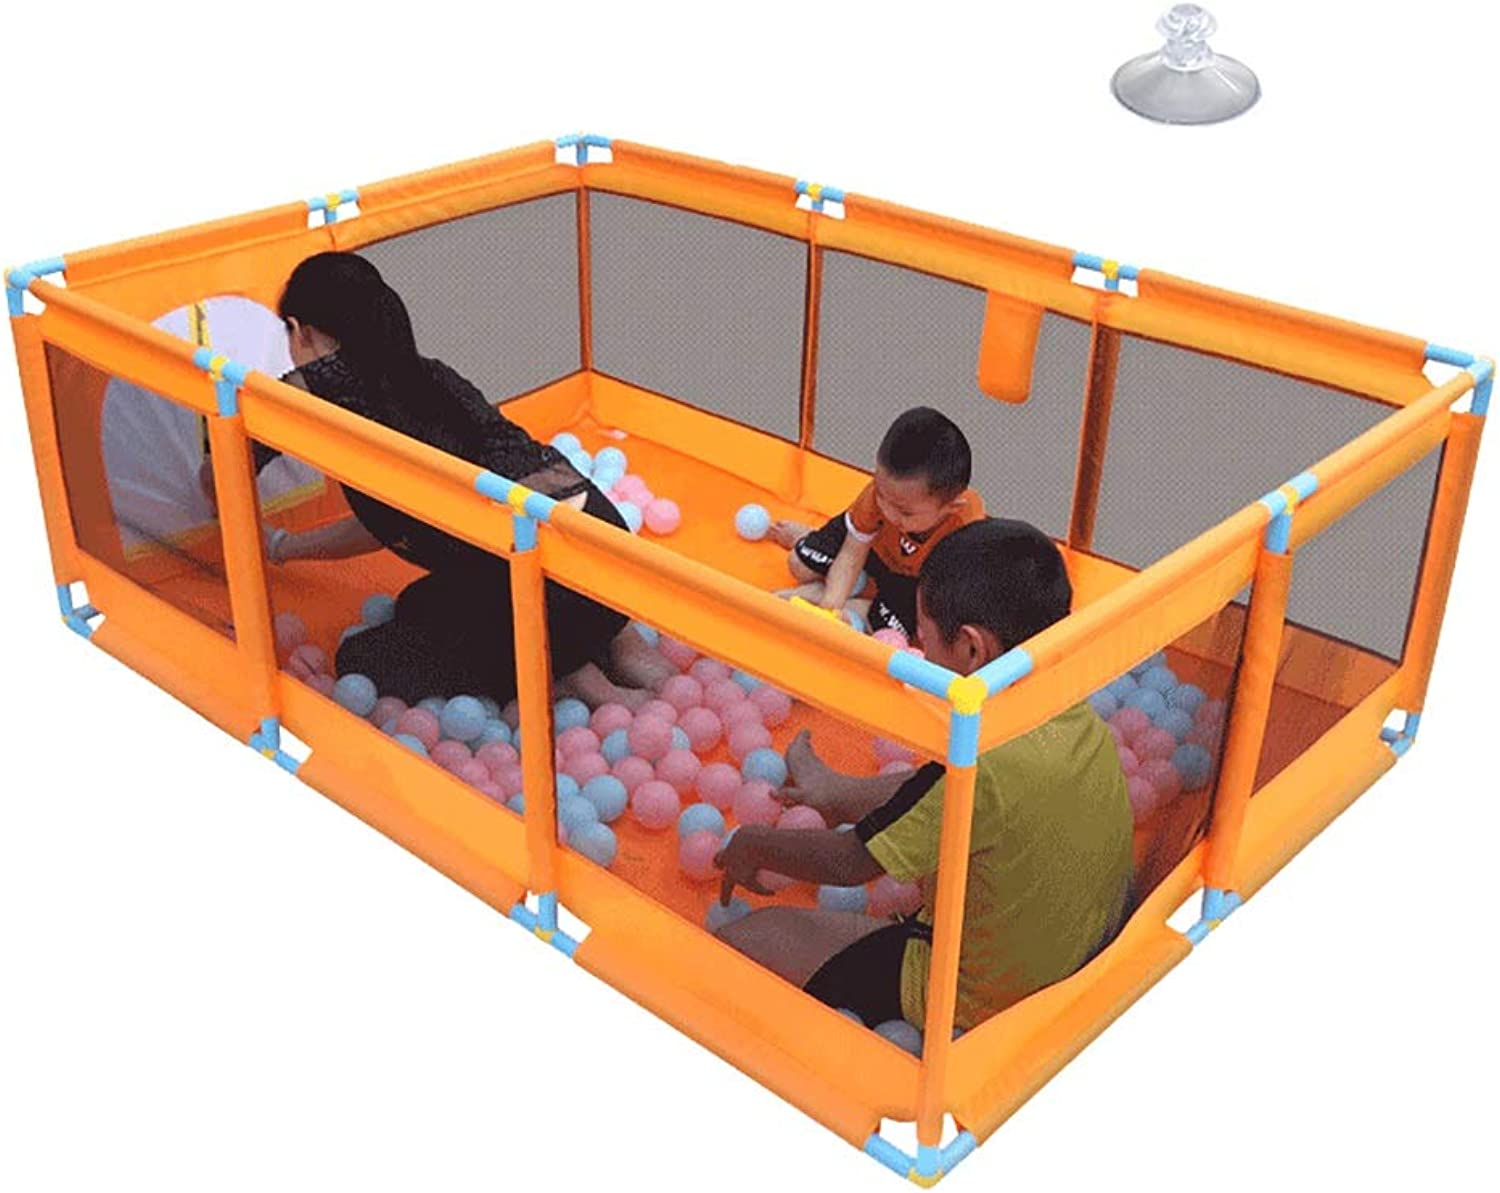 Portable Baby Playpen Foldable Playard Activity Center Infant Playard Indoor Nursury Center Play on the Go Playard (Size   Without basket box)